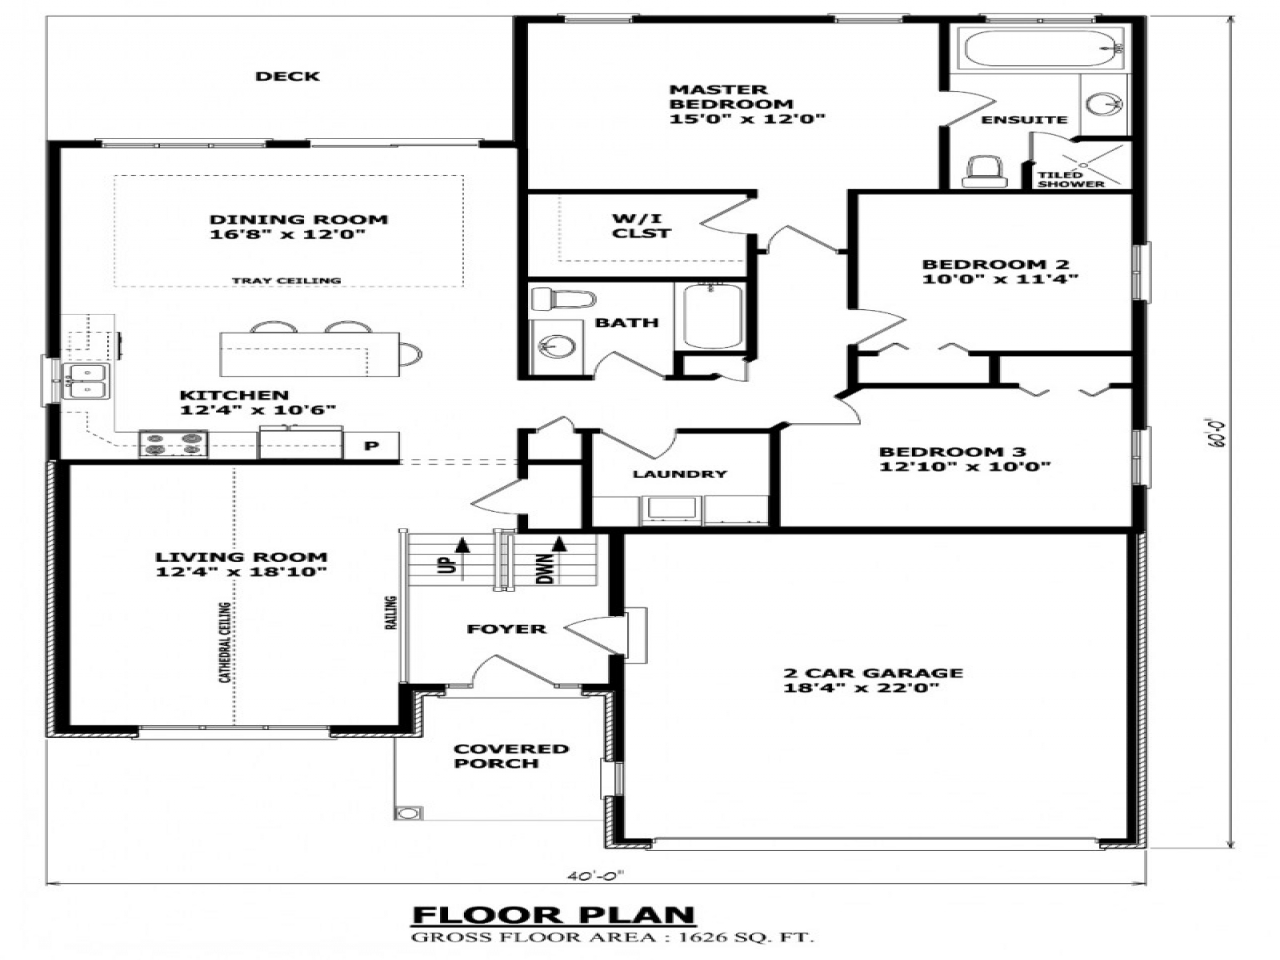 Canadian house plans french canadian style house plans for Home floor plans canada